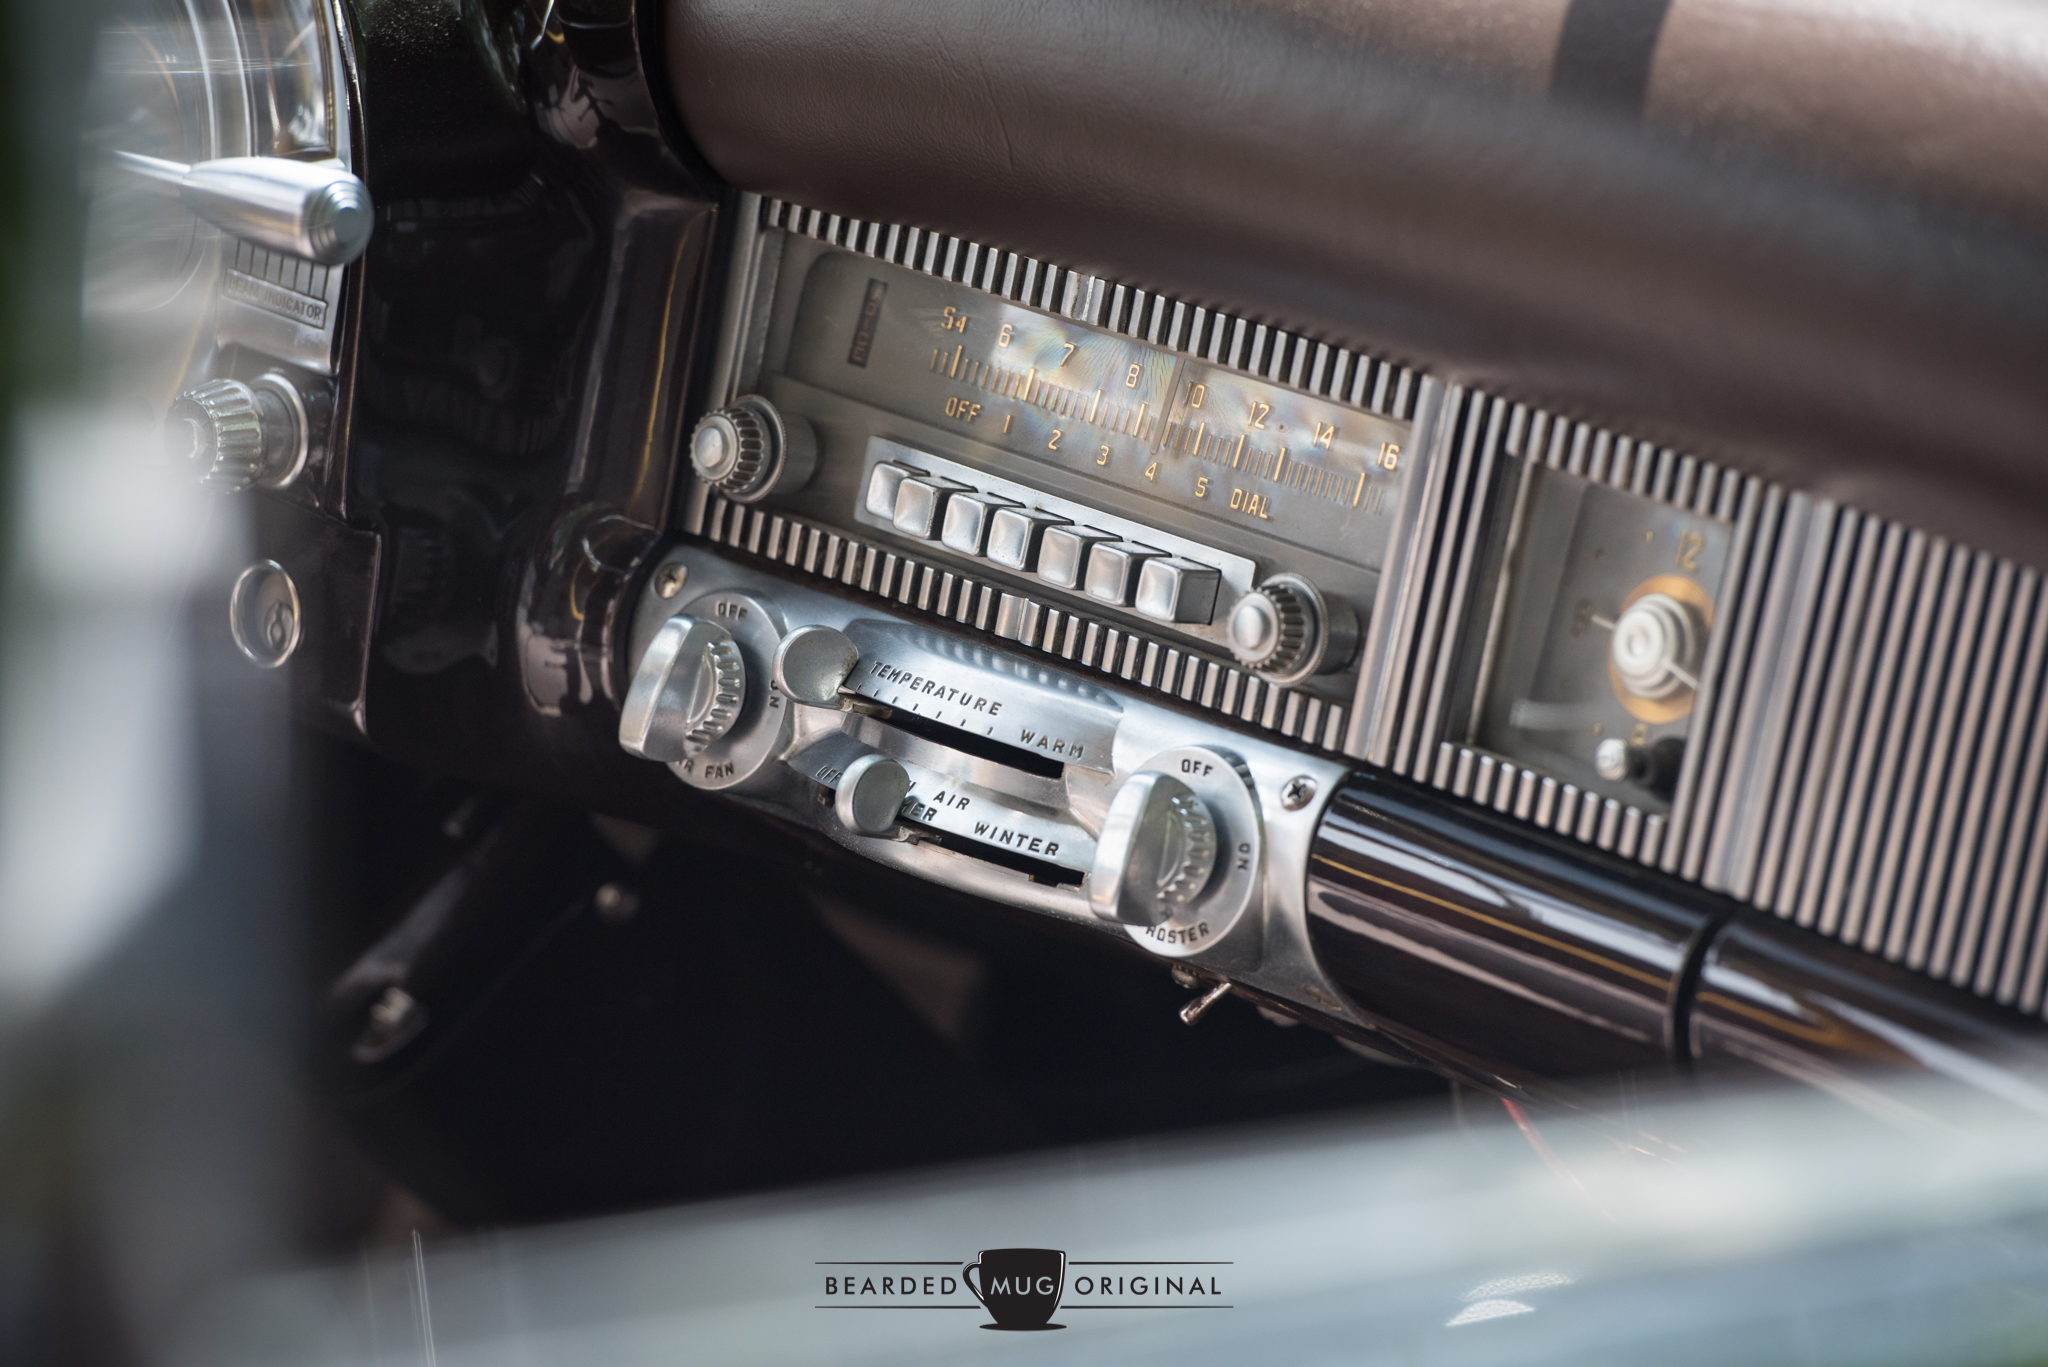 The interior of the 1951 Chrysler Crown Imperial 8-Passenger Sedan can spark enough interest to get lost on the Internet researching Imperials for hours.